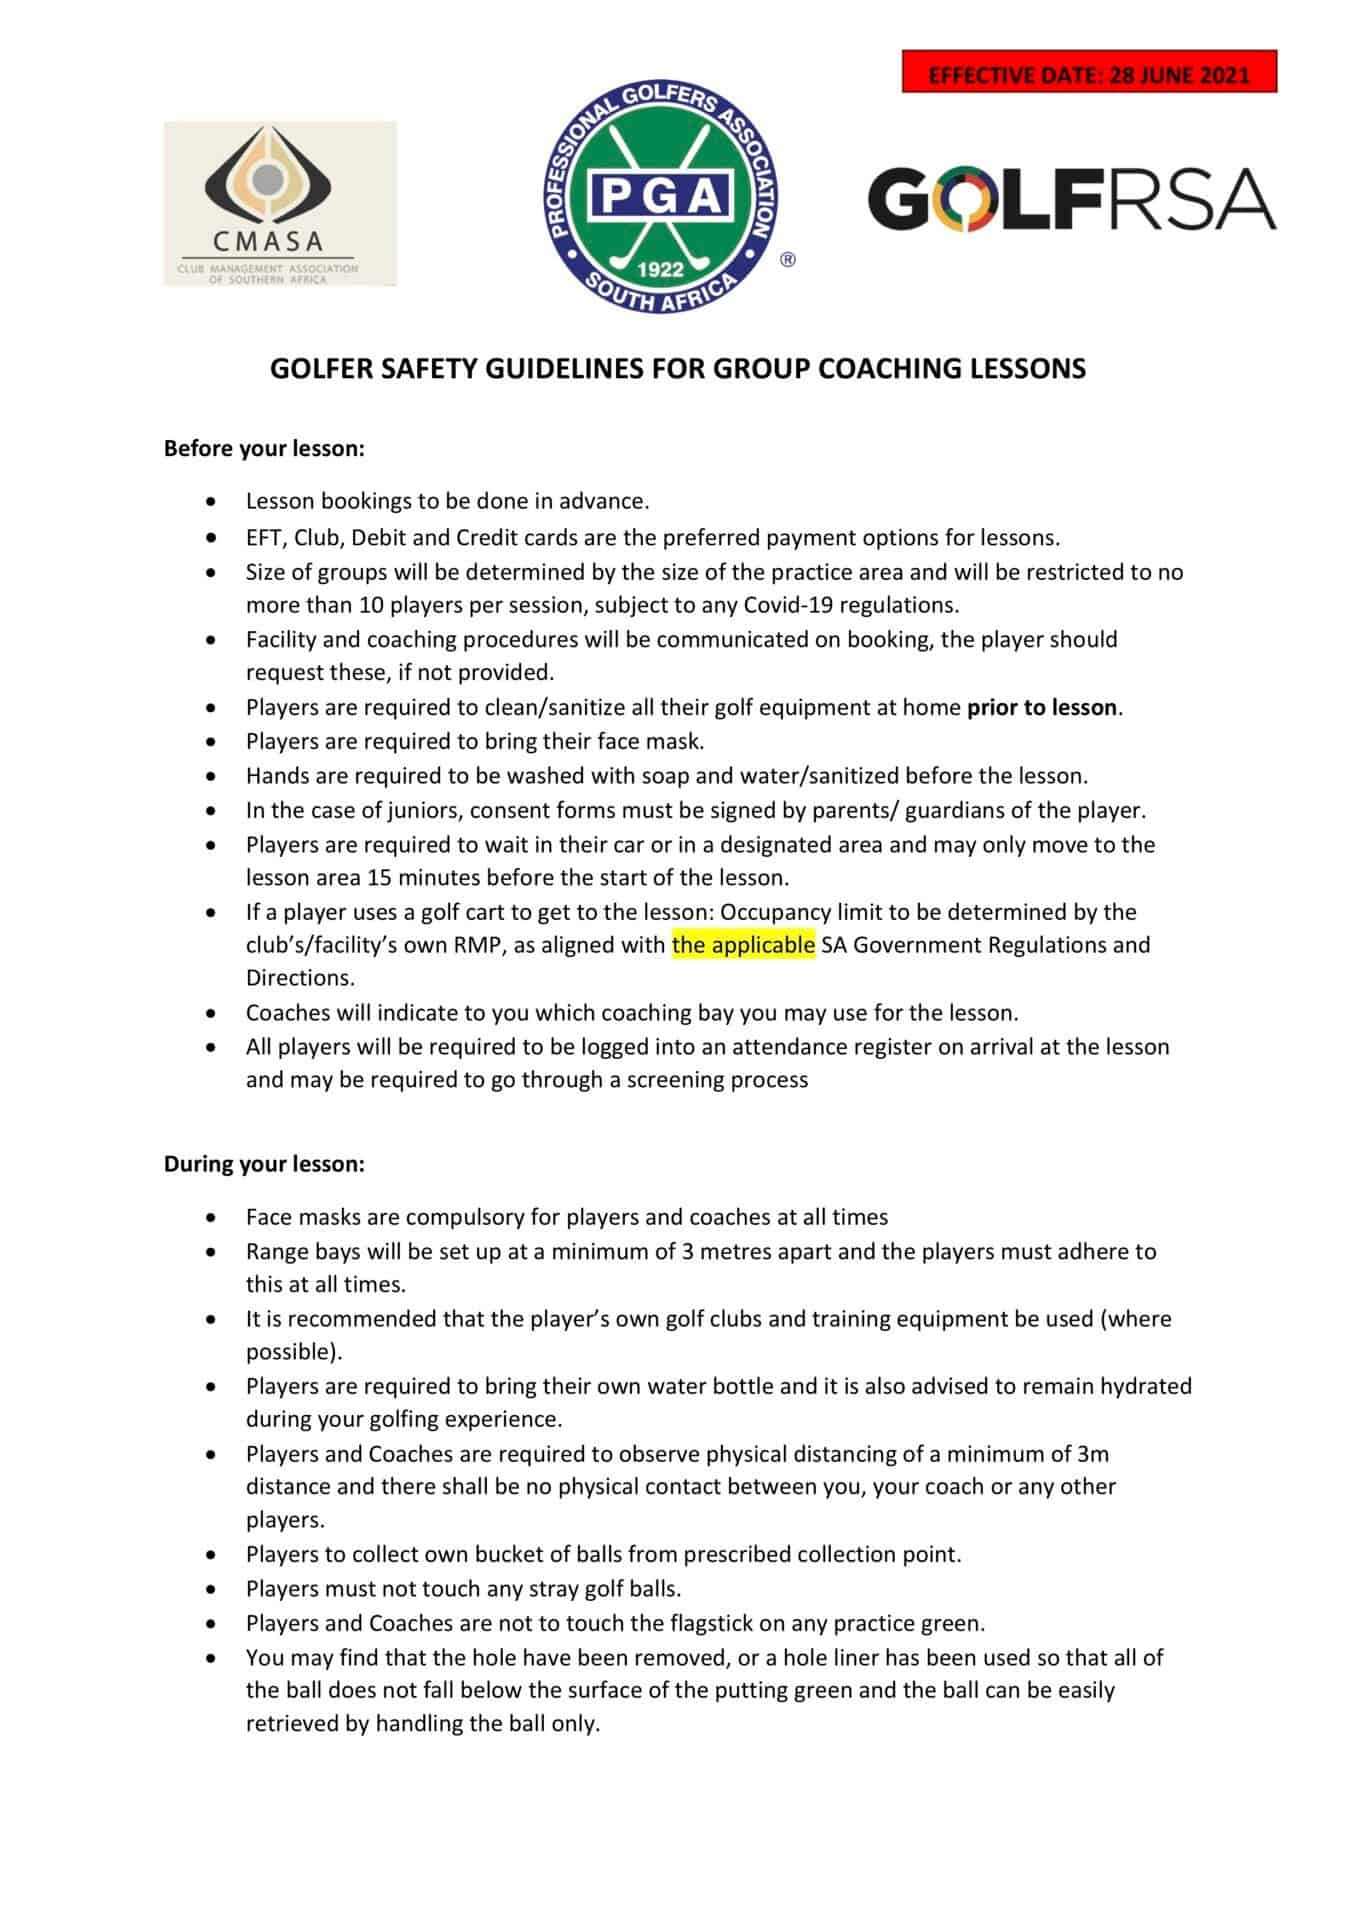 1 - Guidelines for attending a group coaching session_v6 2021 06 28